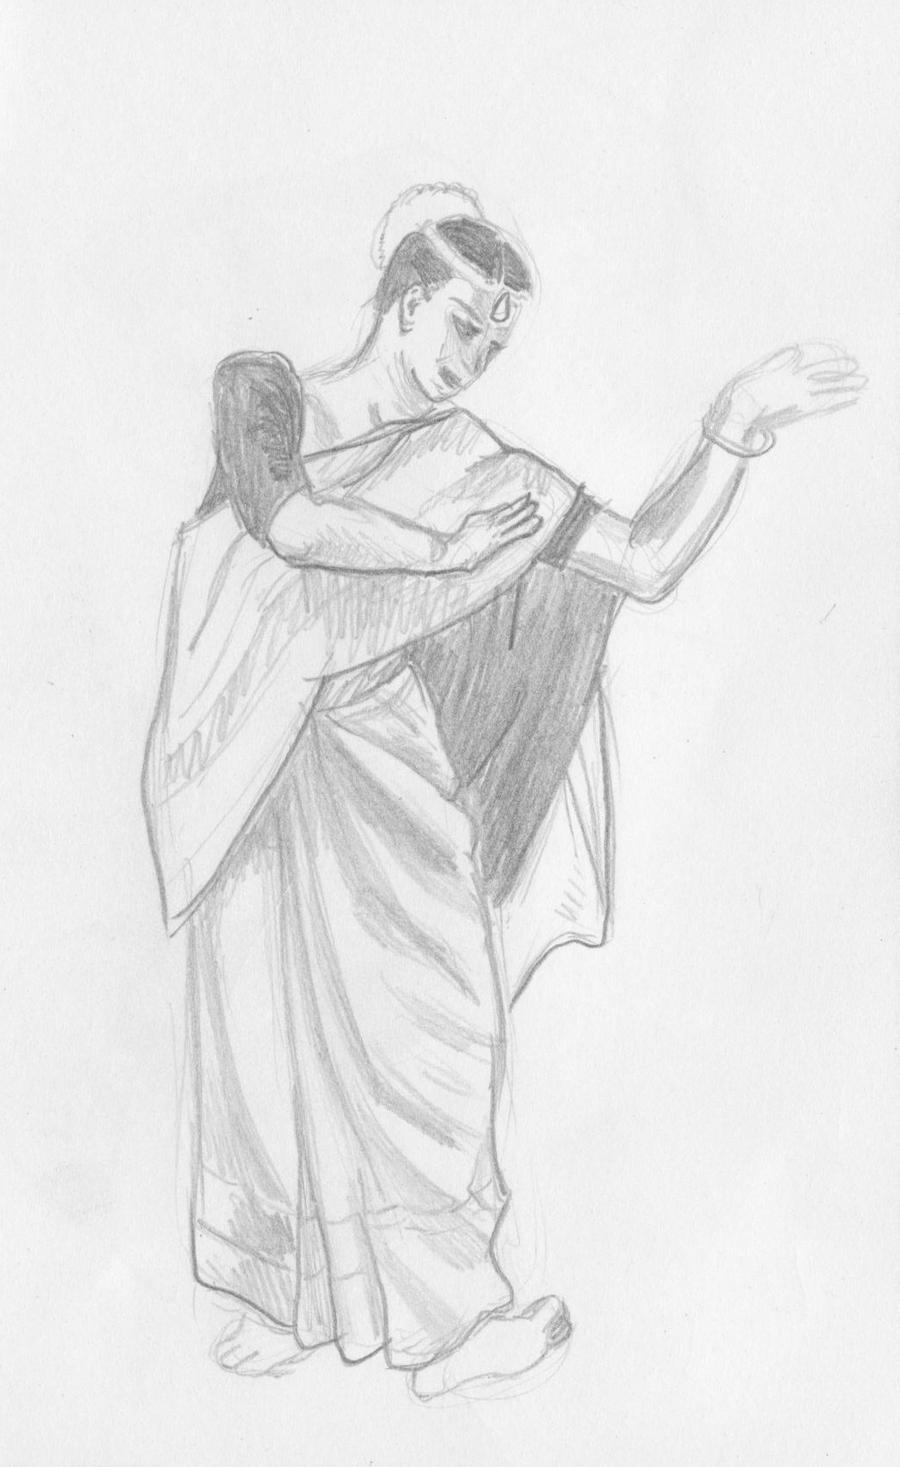 Indian Dancer sketch by Kiyokomachiko